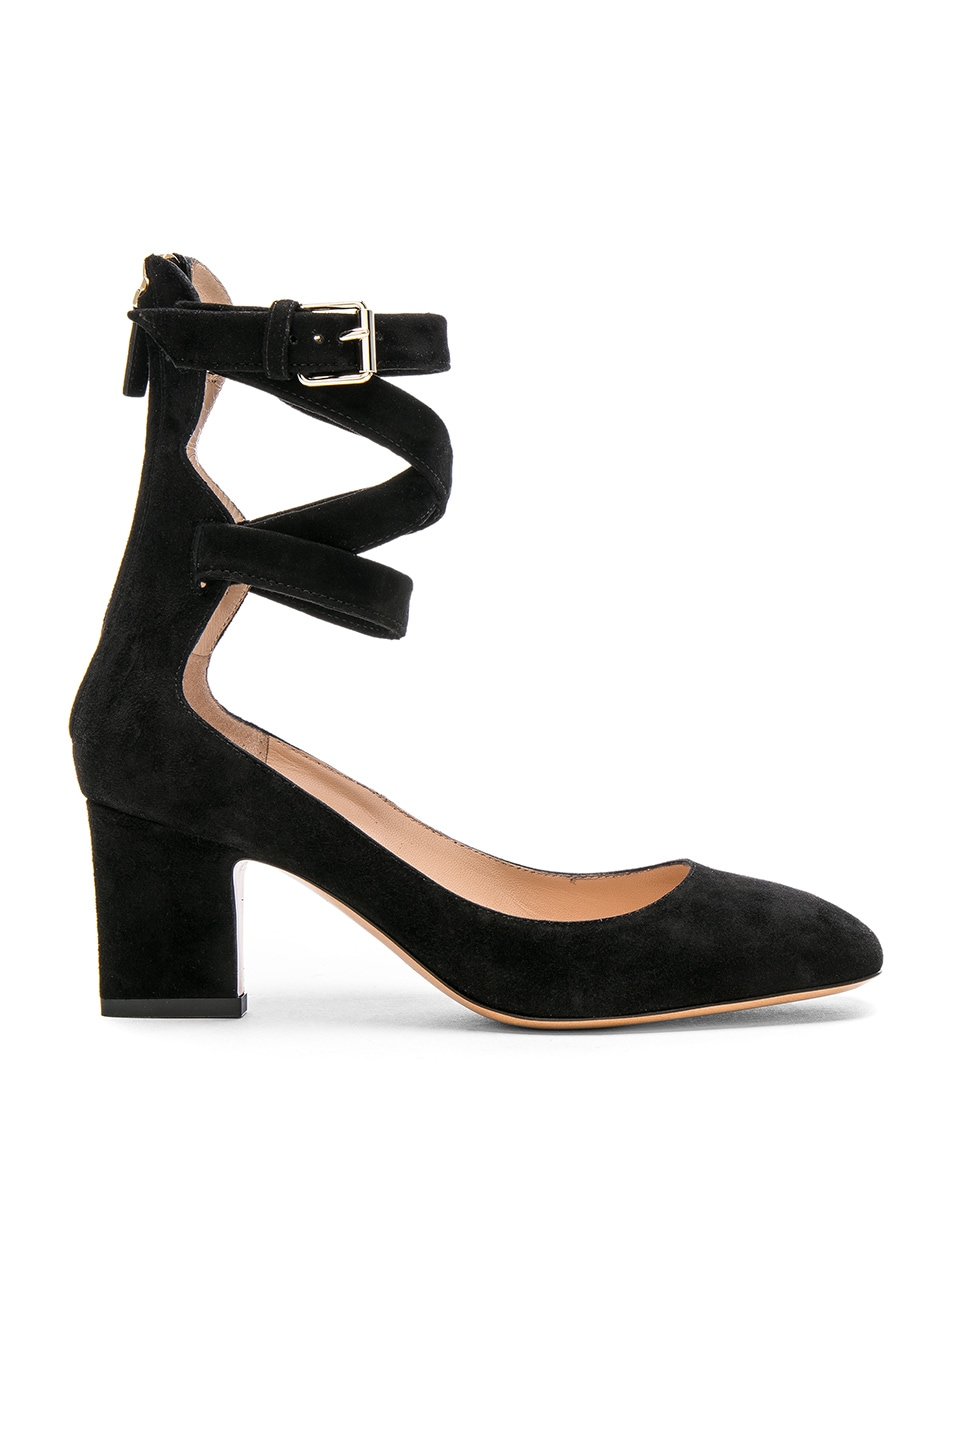 Image 1 of Valentino Suede Ankle Strap Heels in Black